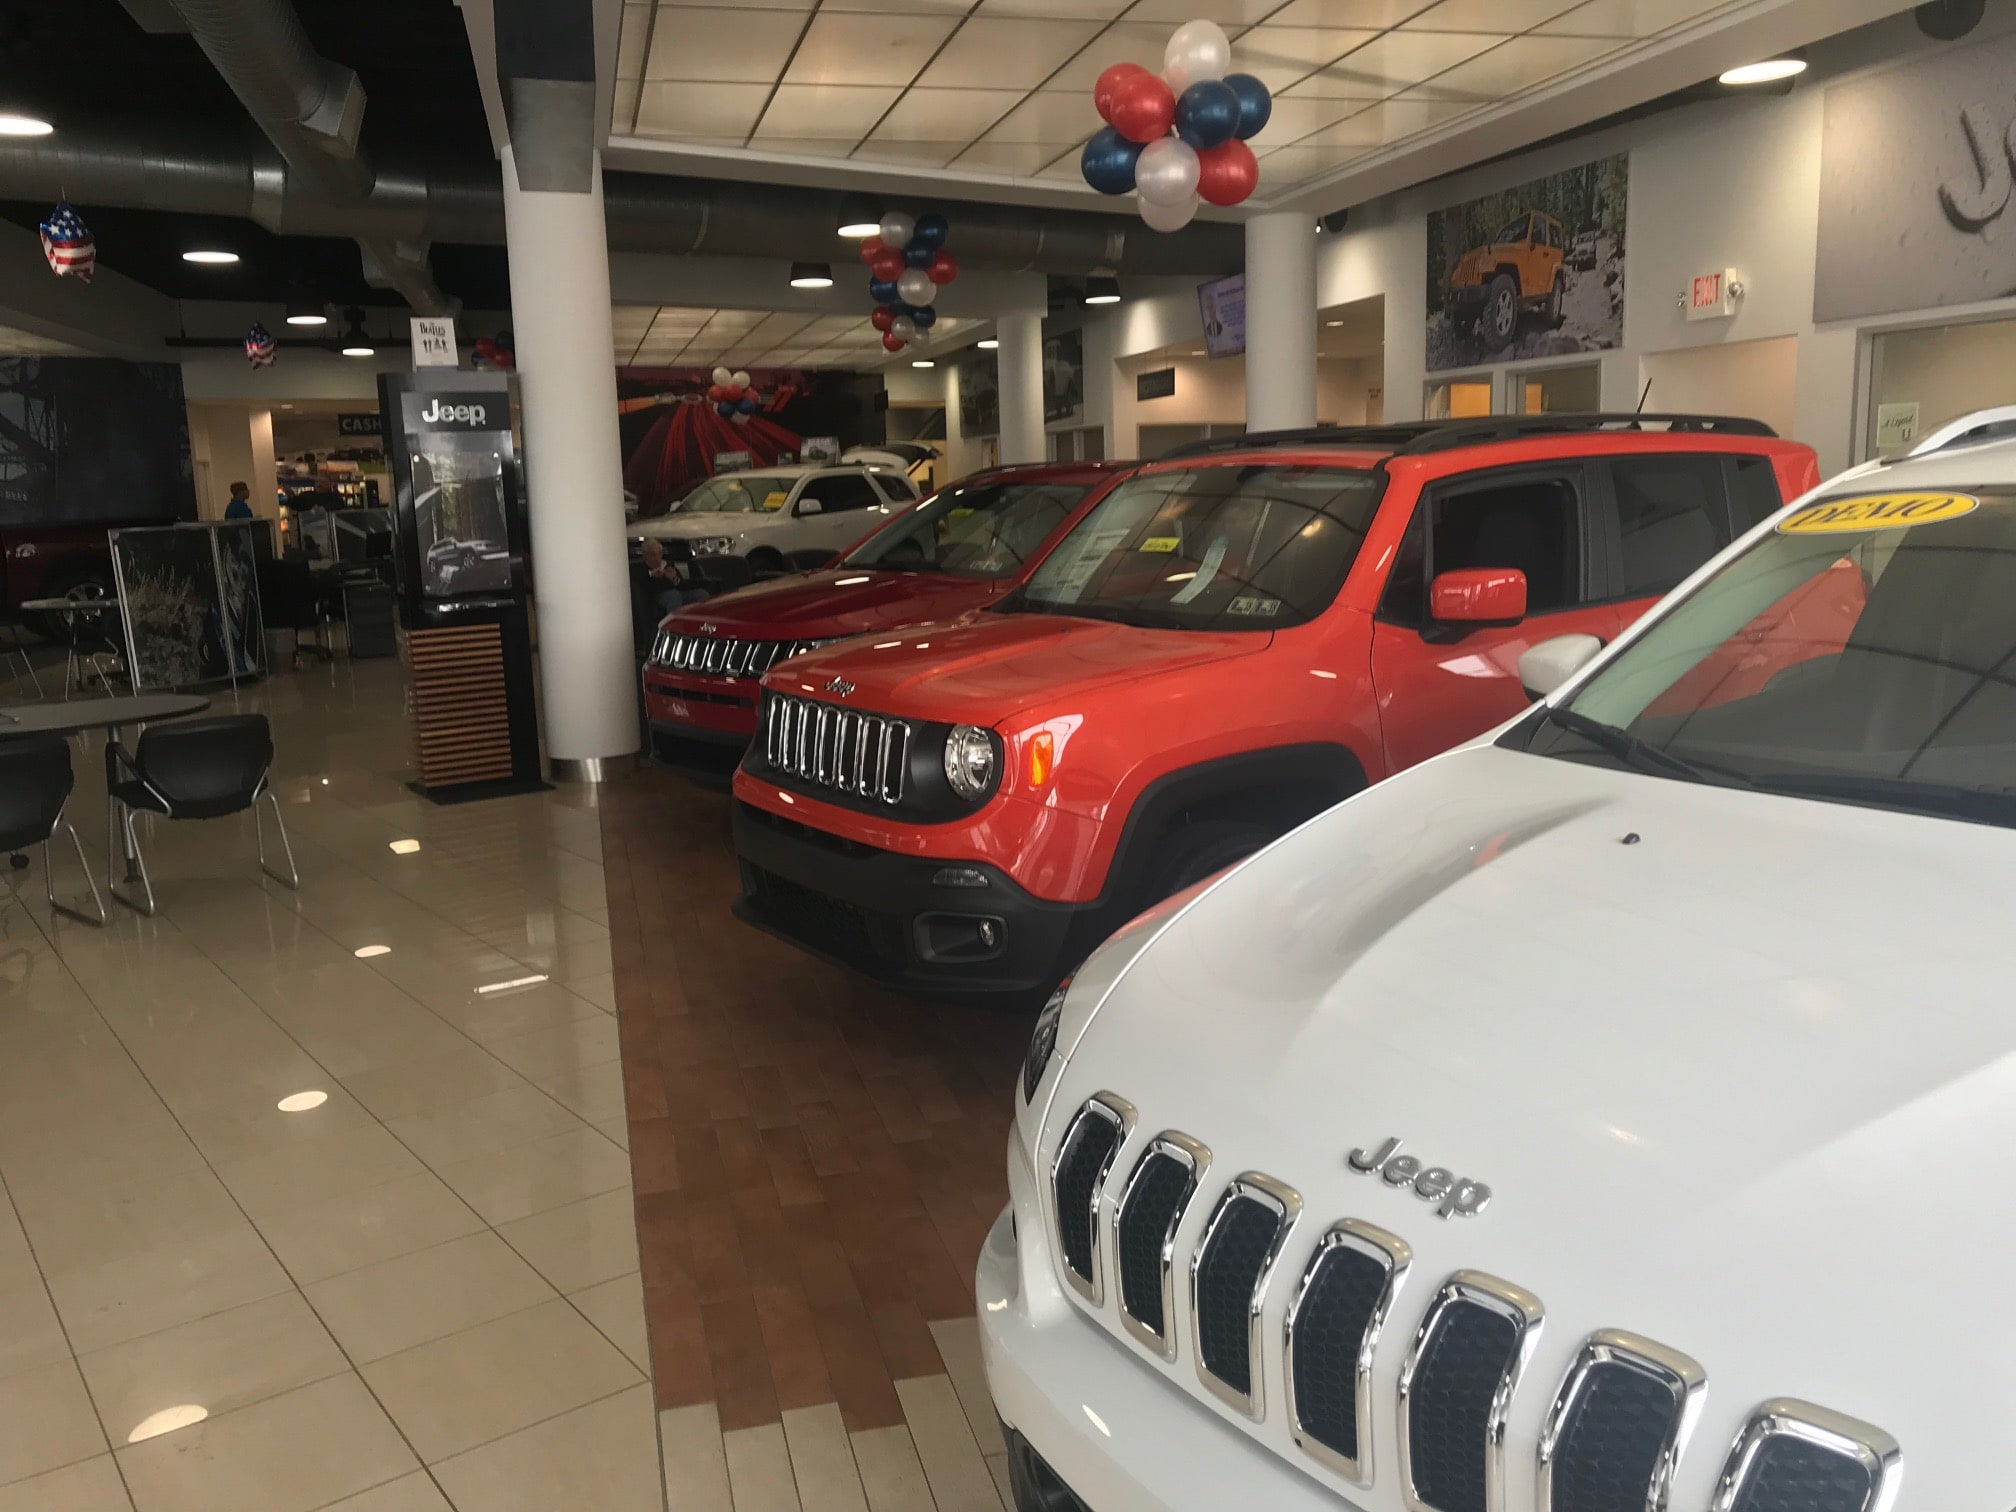 Perfect And After Youu0027ve Purchased Your Next Vehicle, Three Rivers Chrysler Jeep  Dodge Ram Doesnu0027t Go Anywhere. Instead, We Continue To Support You With An  Onsite ...